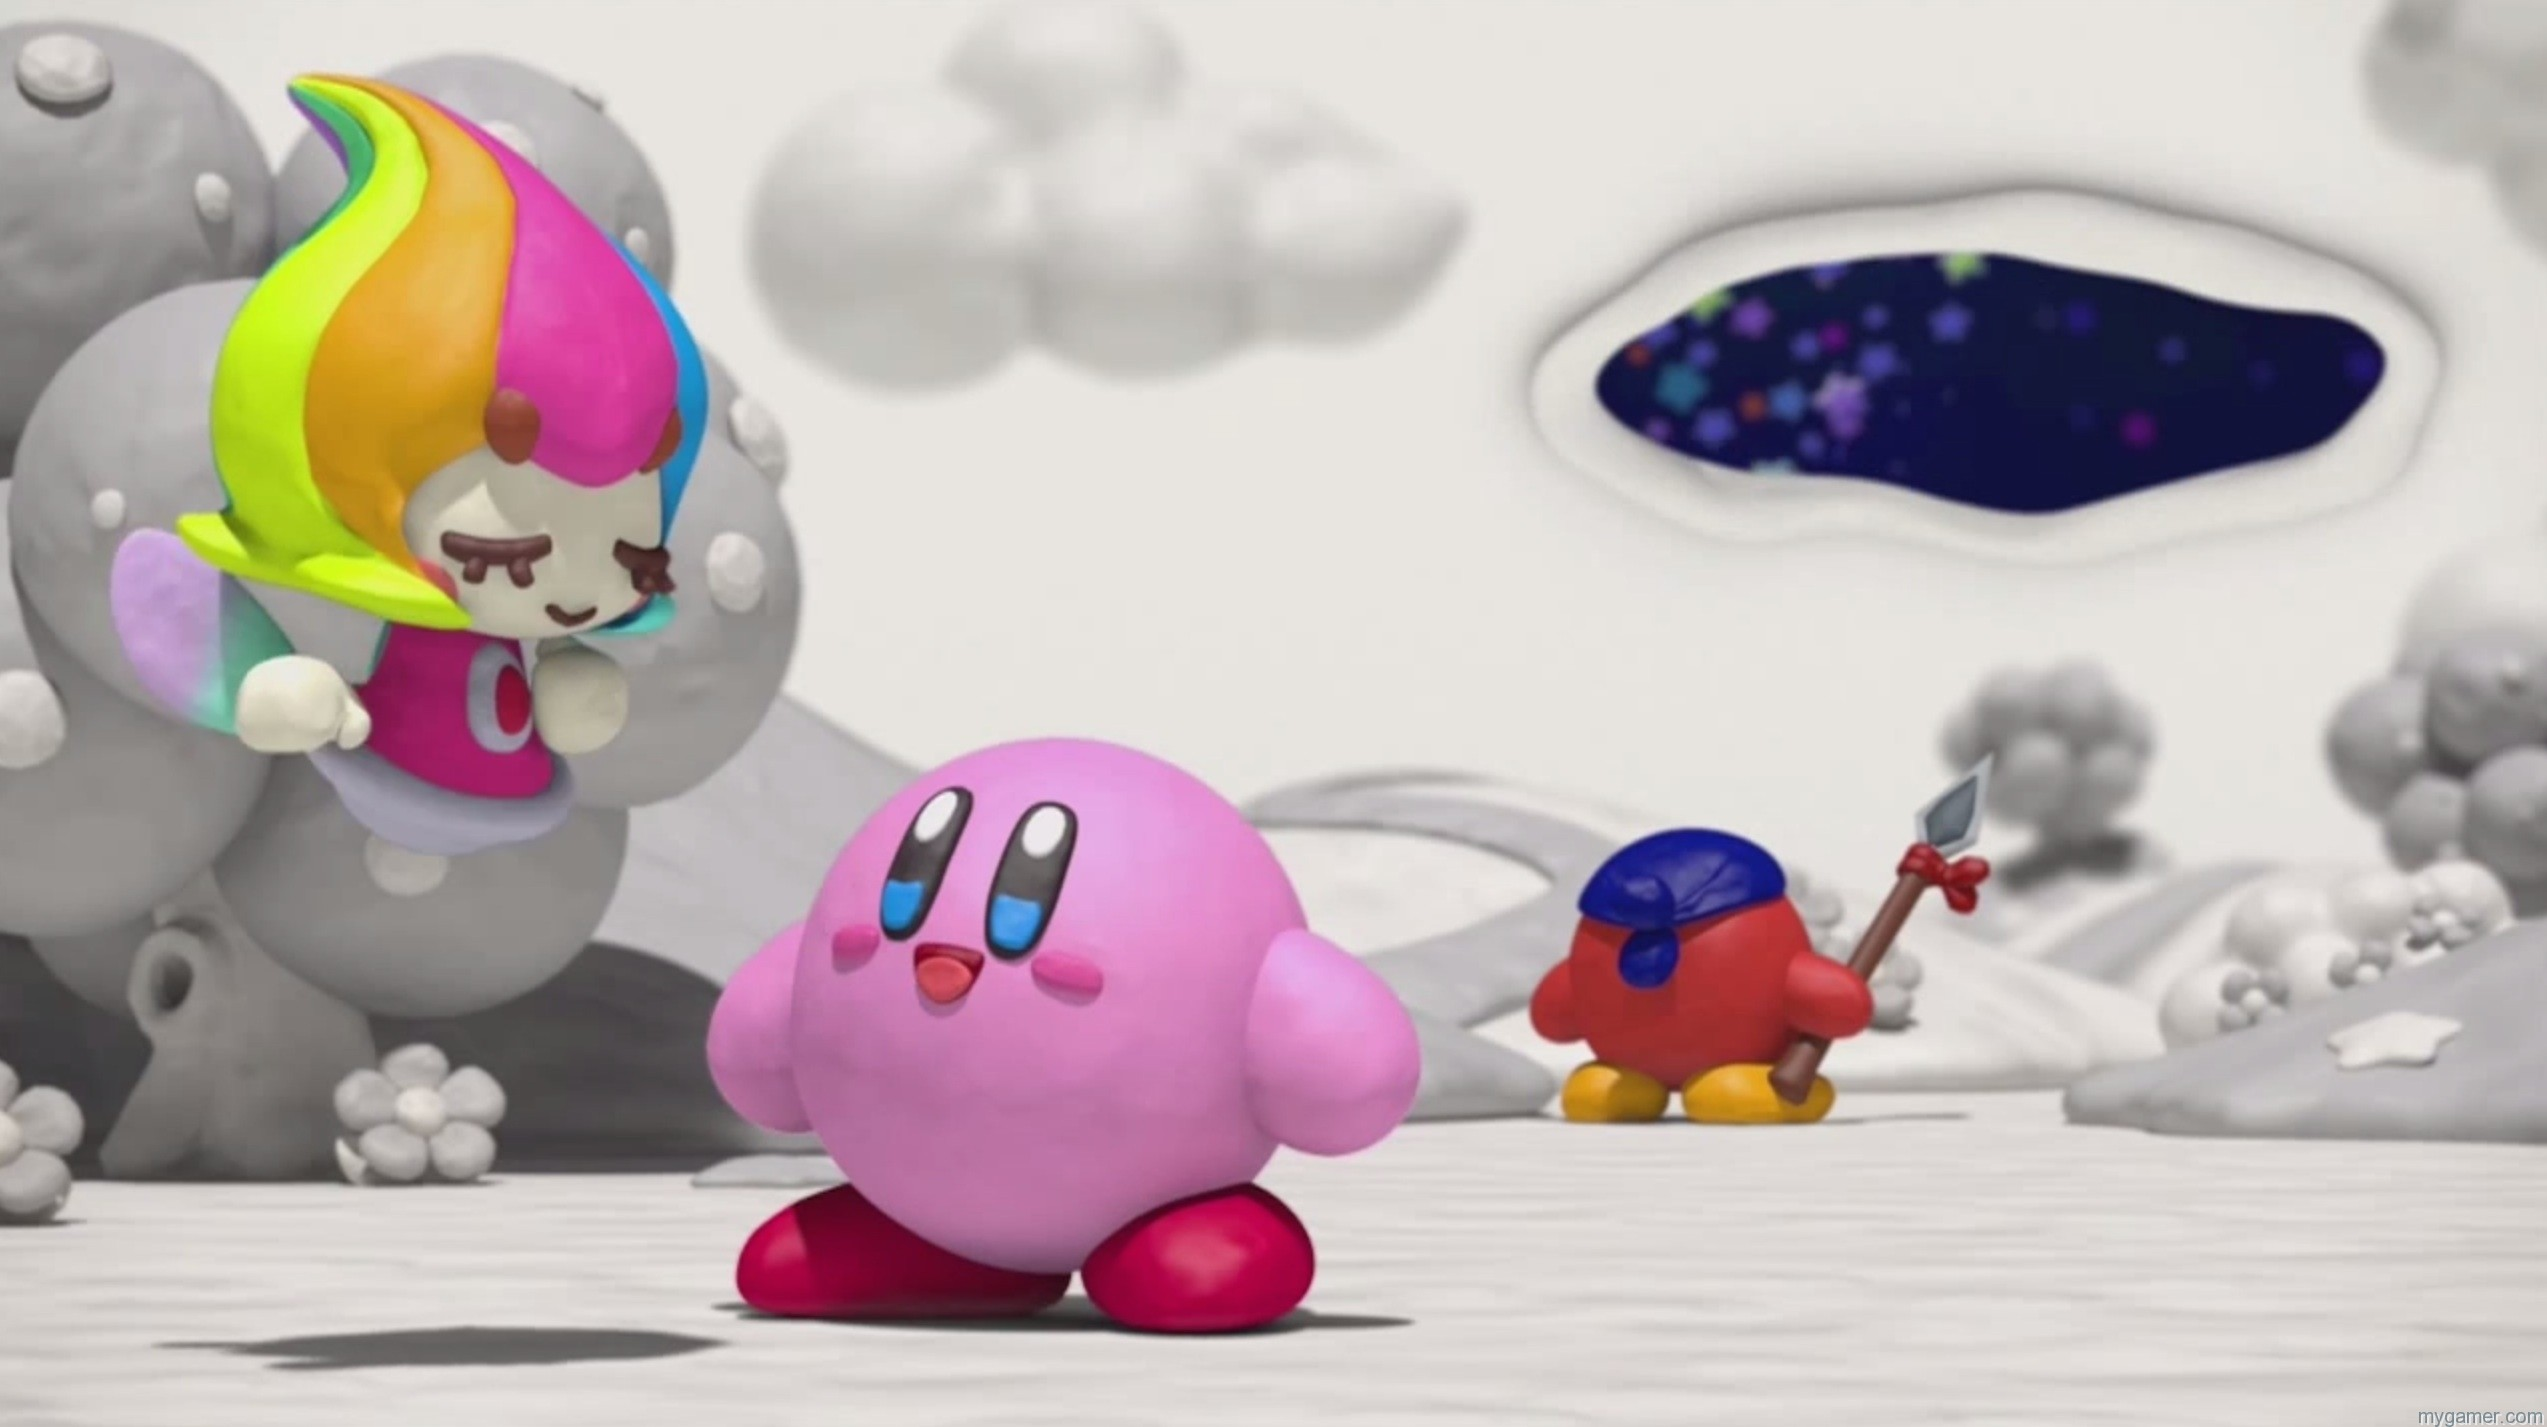 Save the colors, Kirby!